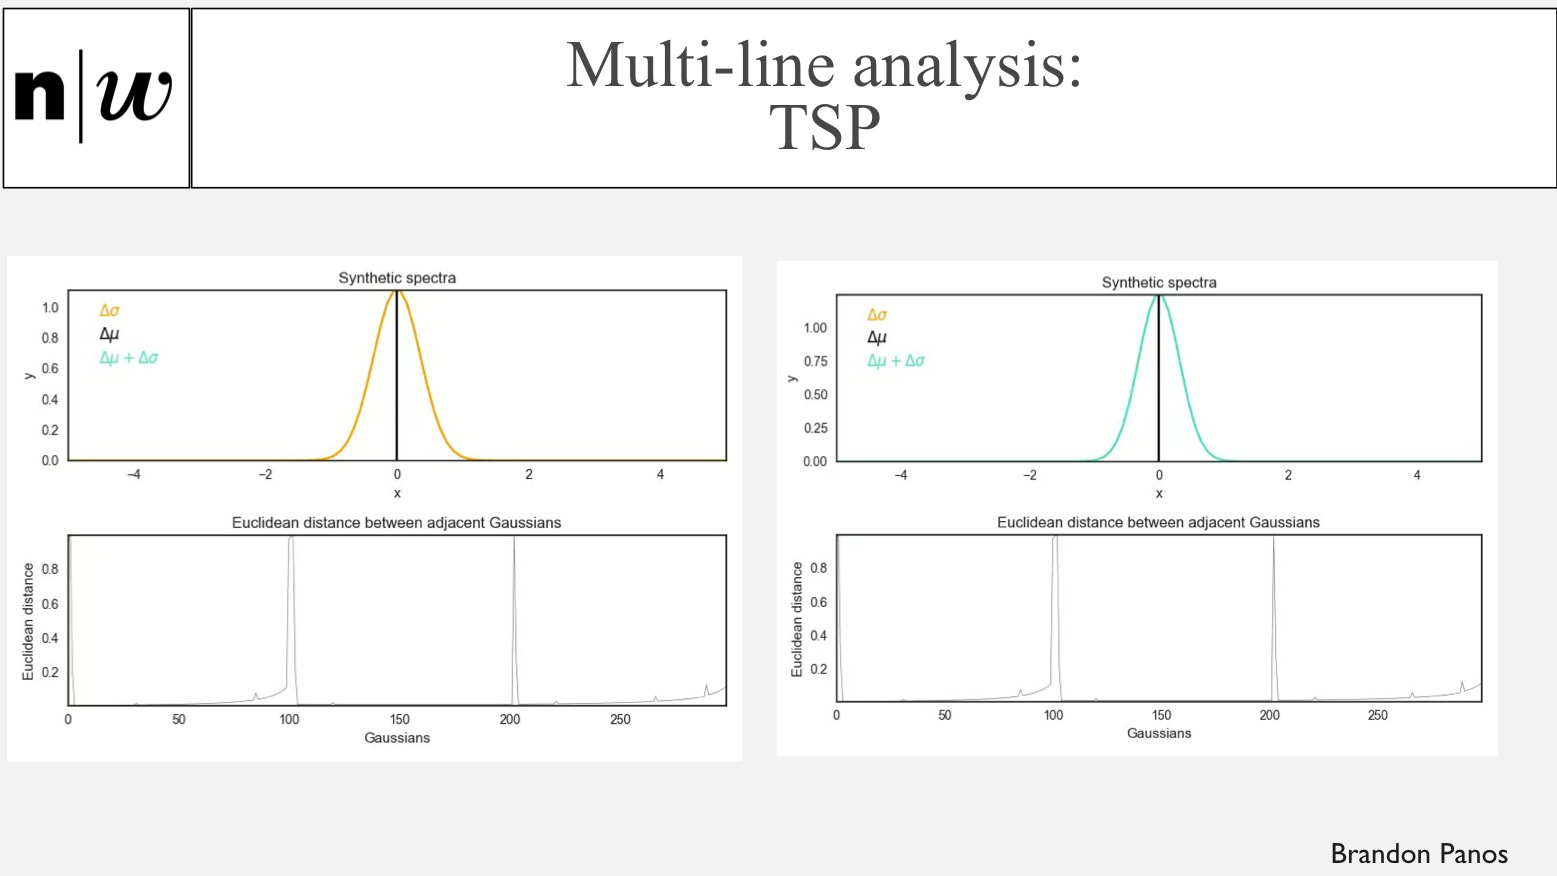 Multi-line analysis: TSP